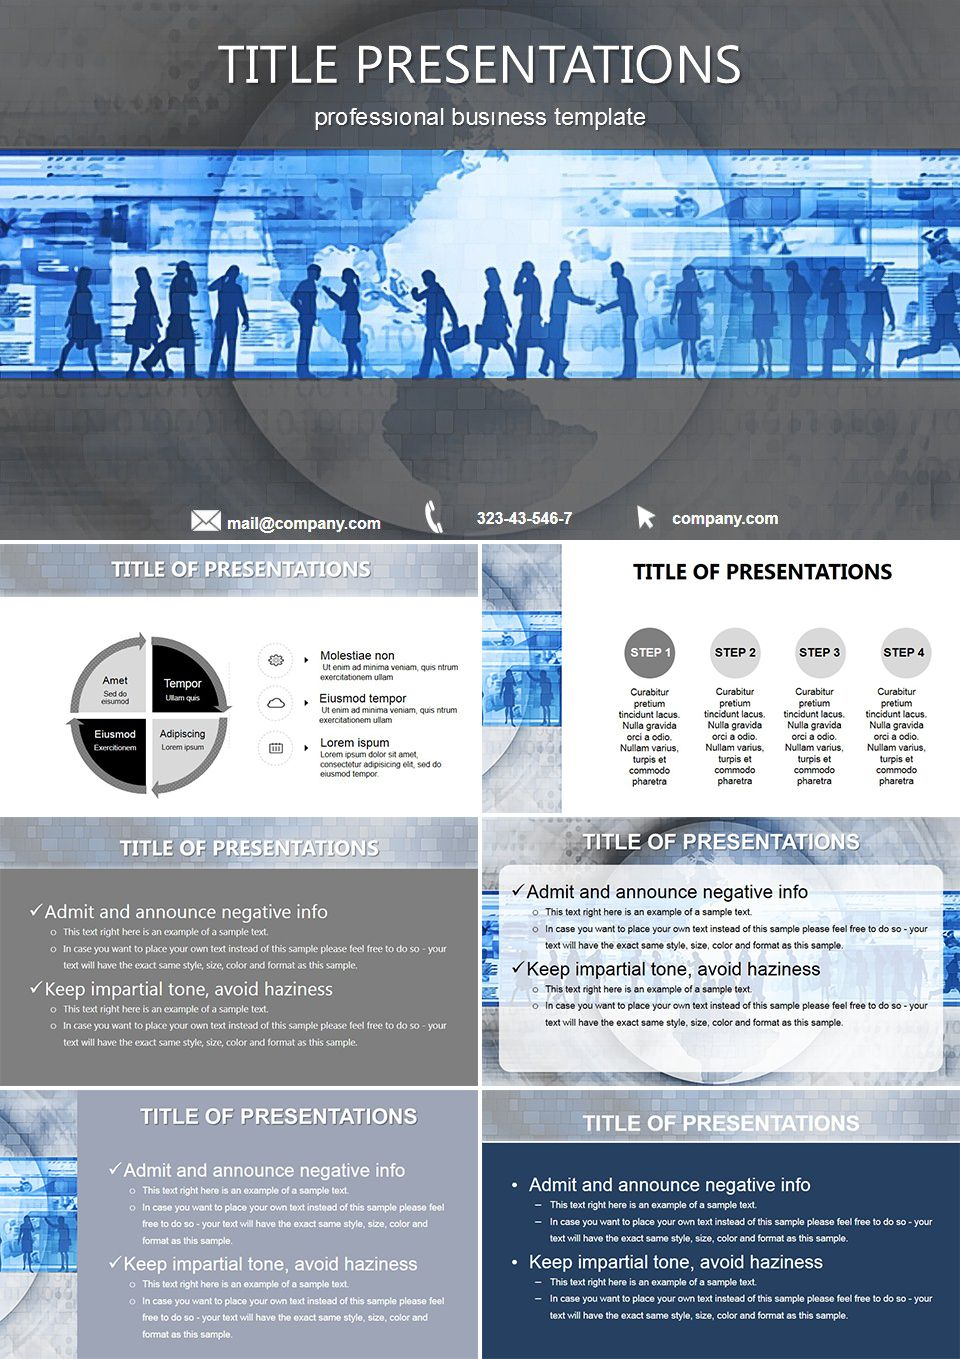 Beautiful download free powerpoint templates images professional sociology behavior of people free powerpoint templates free toneelgroepblik Choice Image